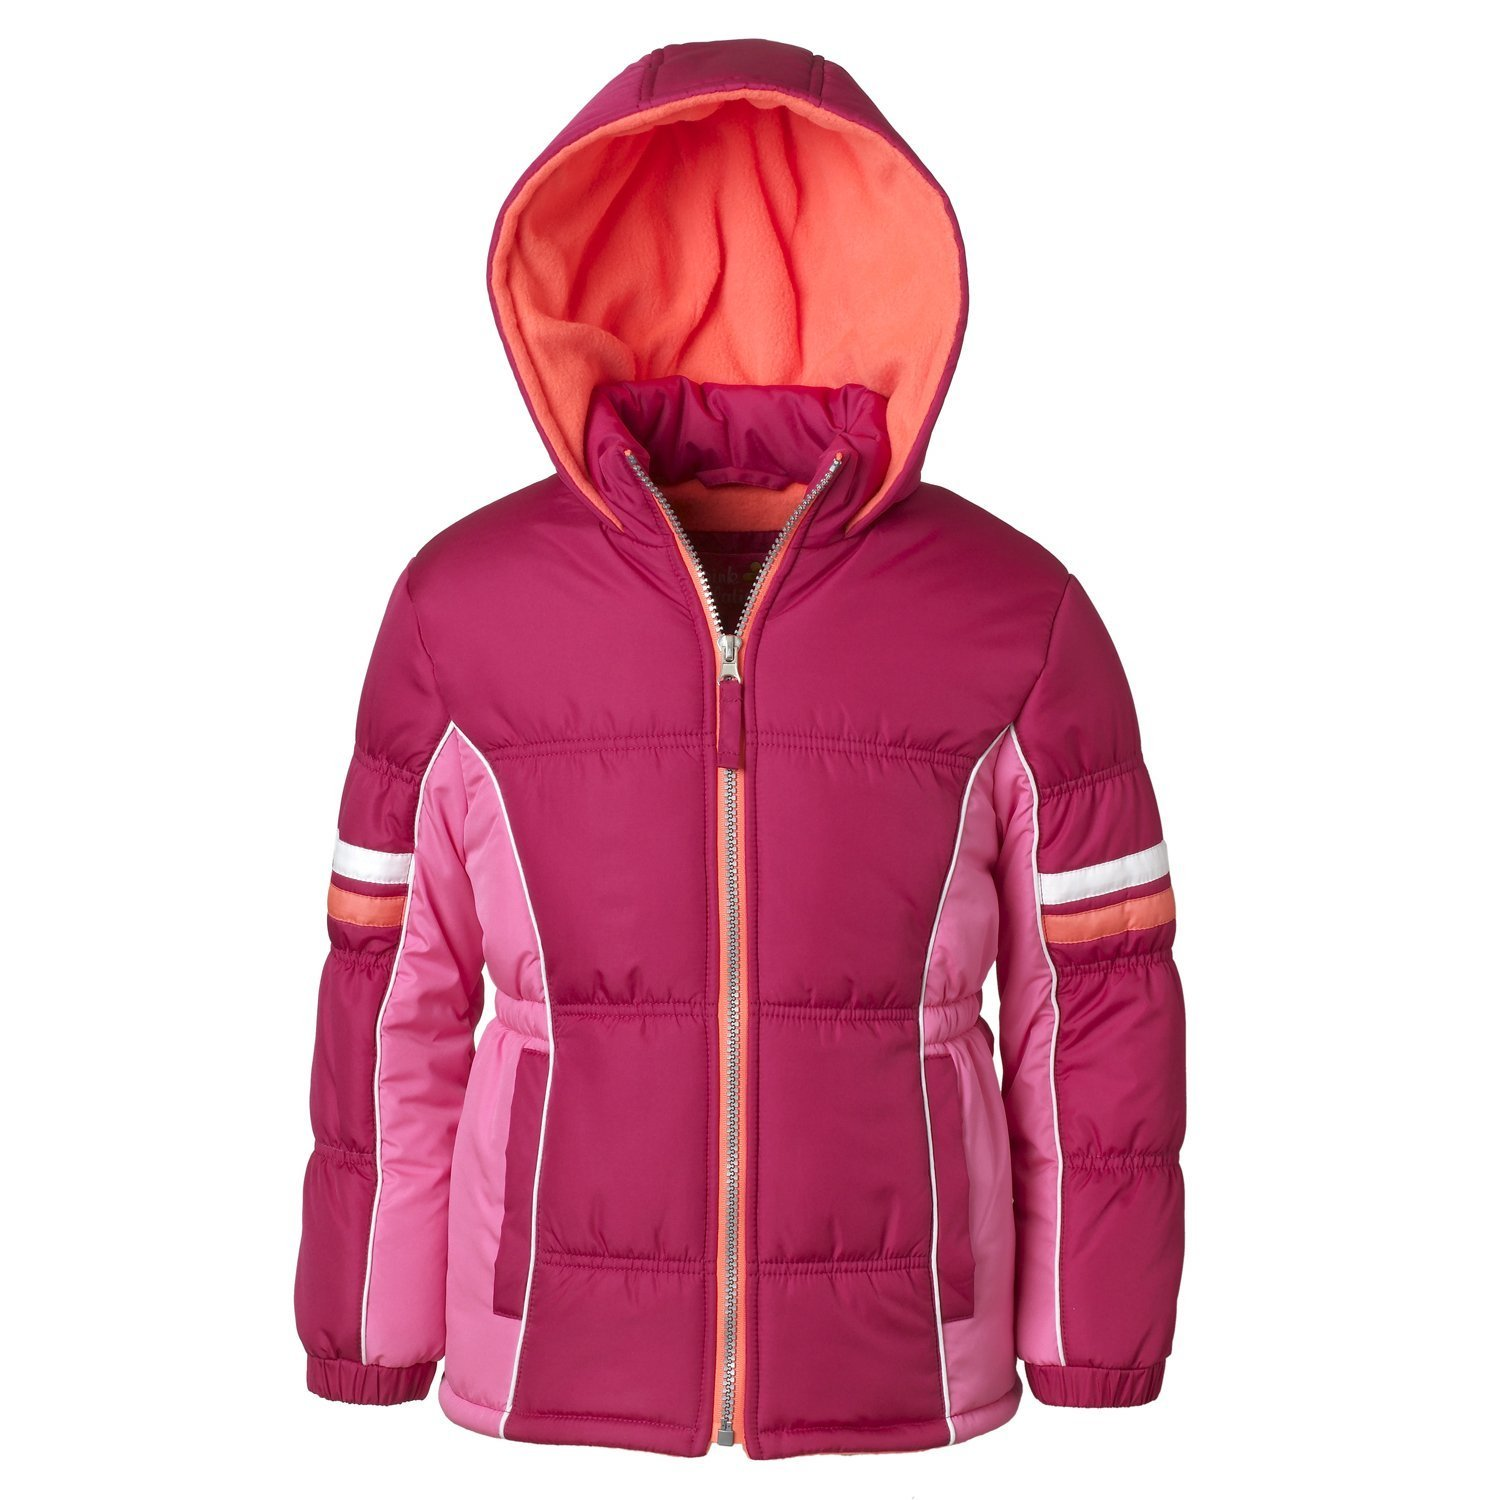 Pink Platinum Puffer Jacket for Girls, Babies & Toddlers with Colorblock Pattern